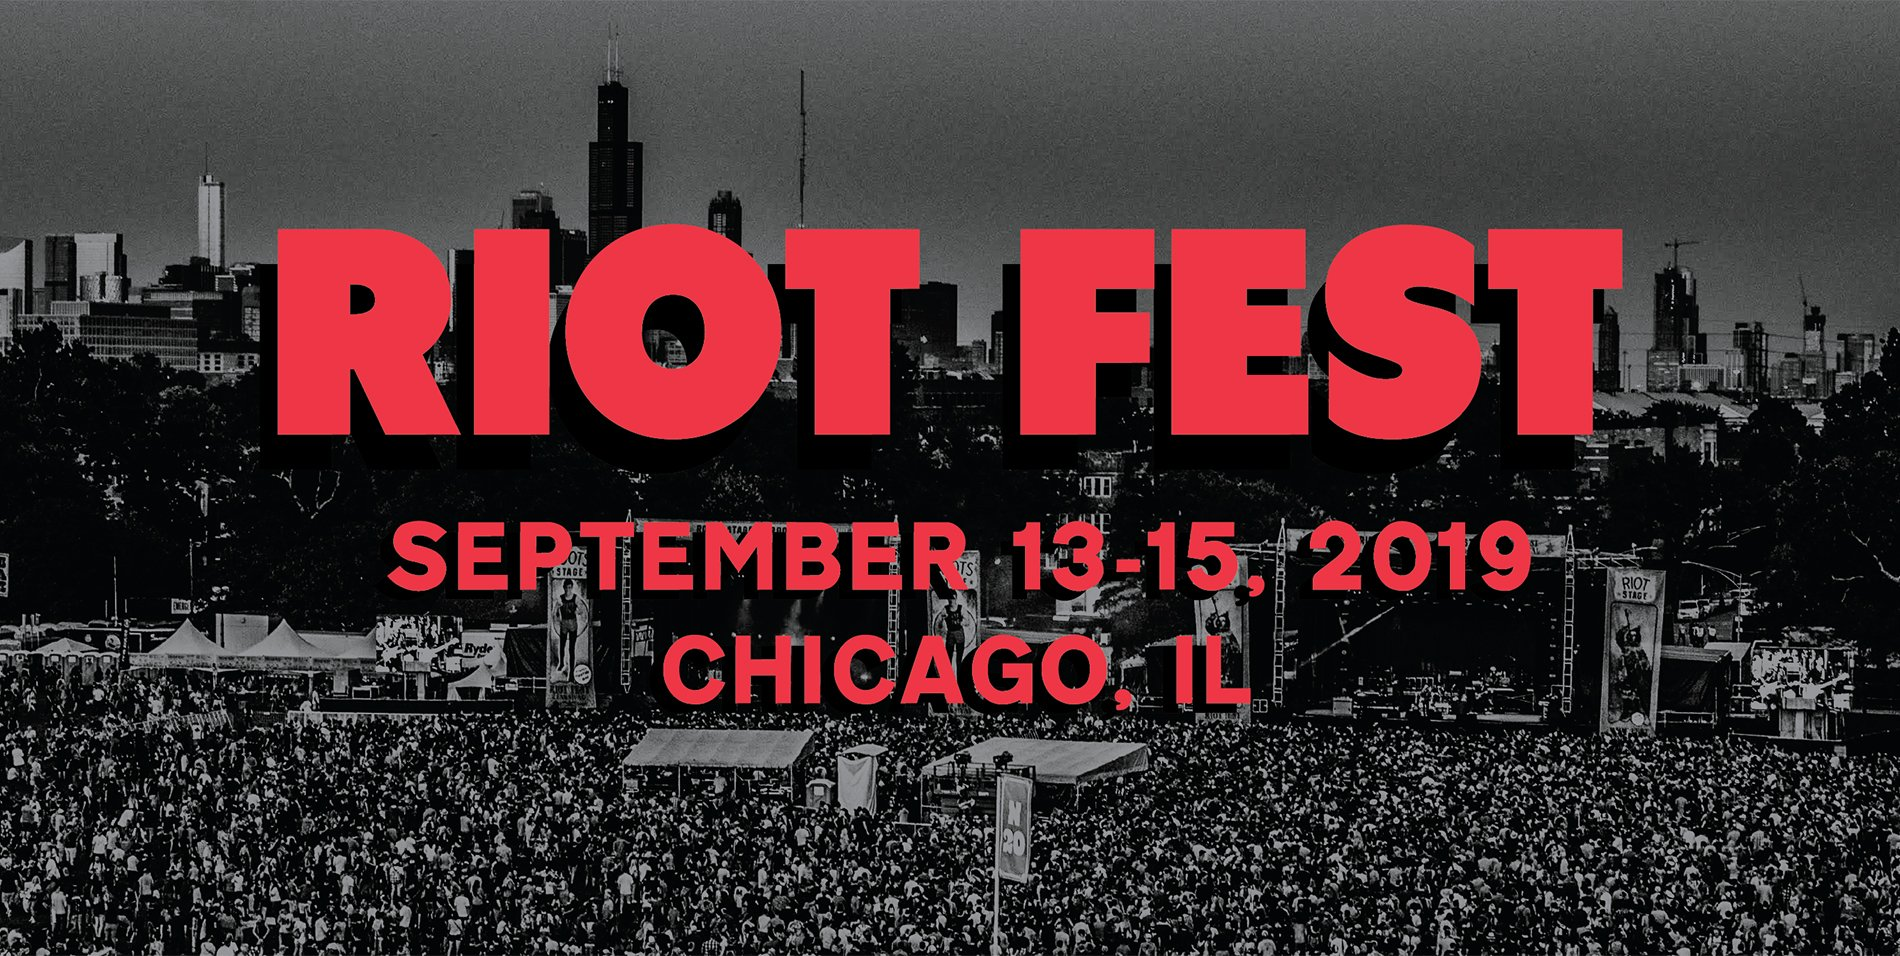 336 days until Riot Fest. Who do you want to see on the lineup next year? https://t.co/ElZ0I56J1z